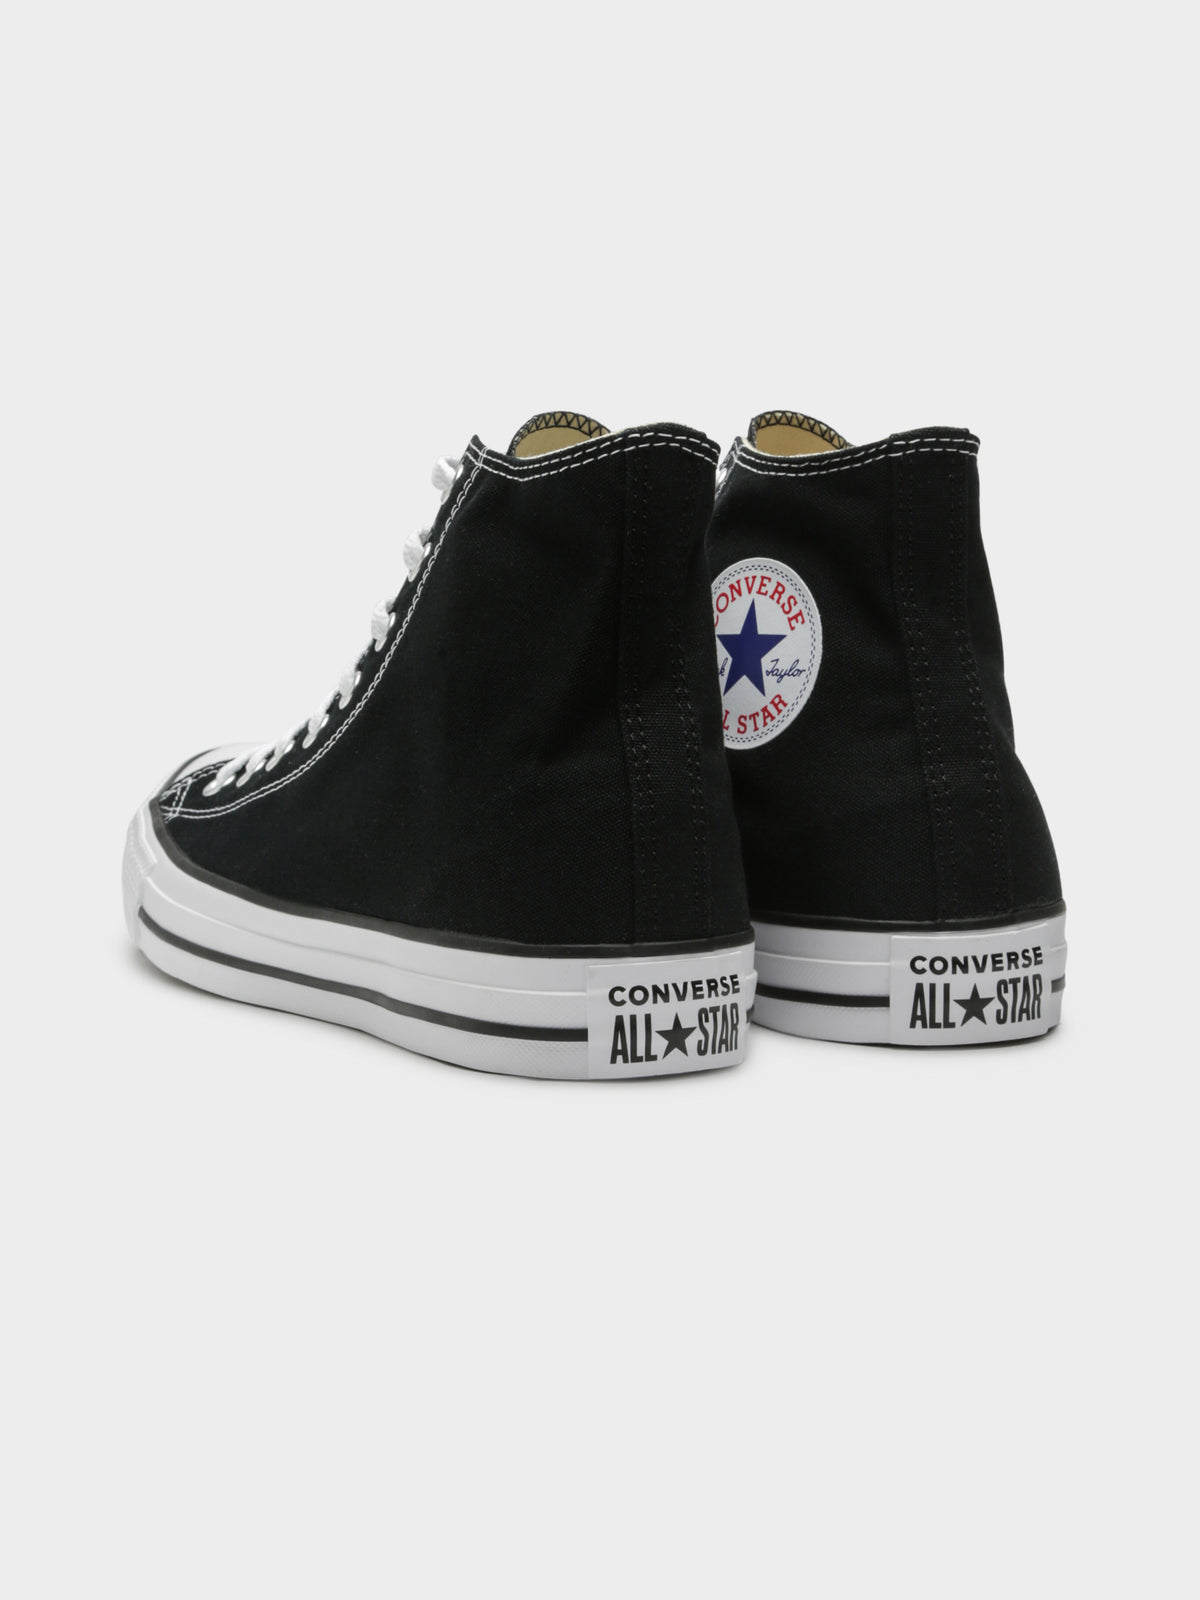 Unisex Chuck Taylor All Star High Top Sneakers in Black